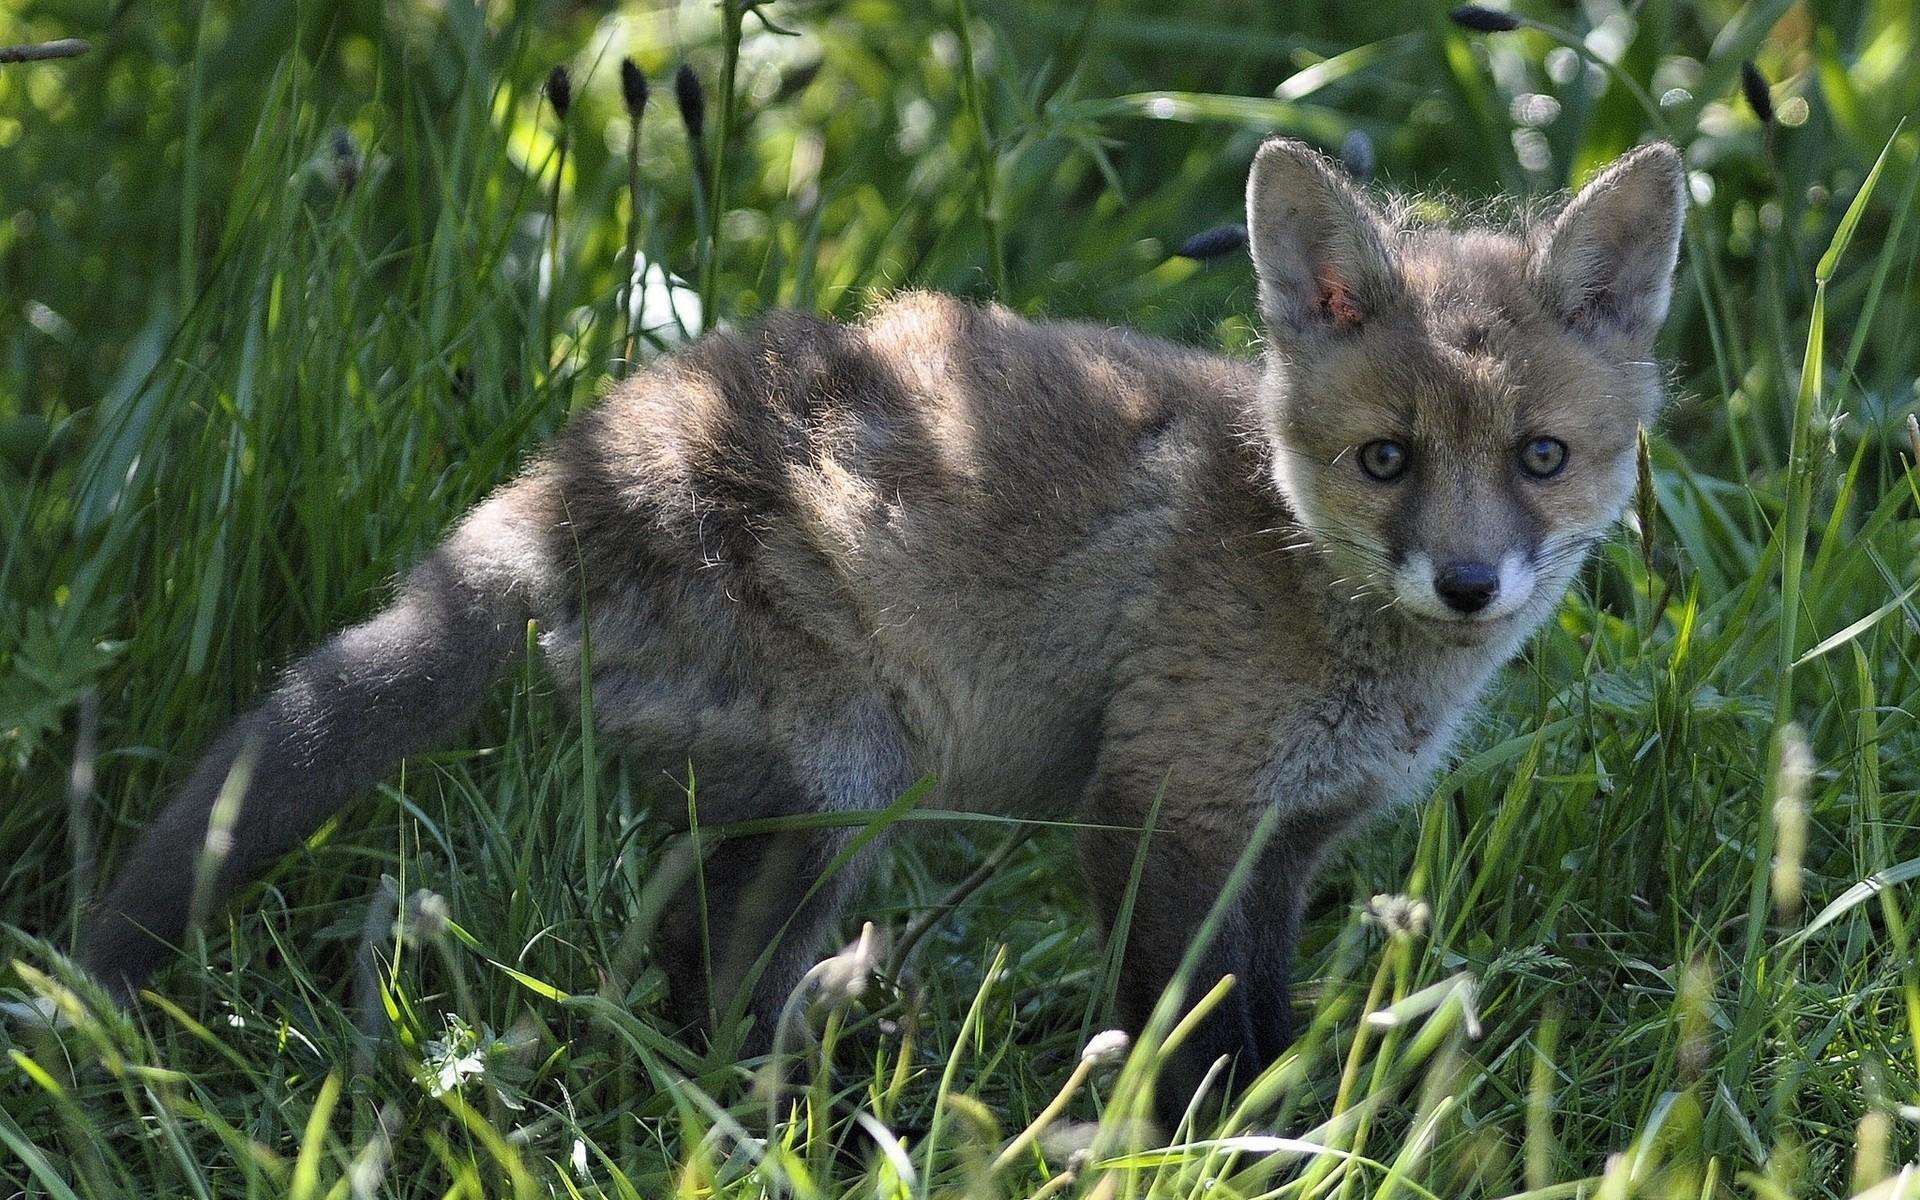 animals mammal animal grass cute wildlife nature little fur outdoors wild fox canine young baby looking